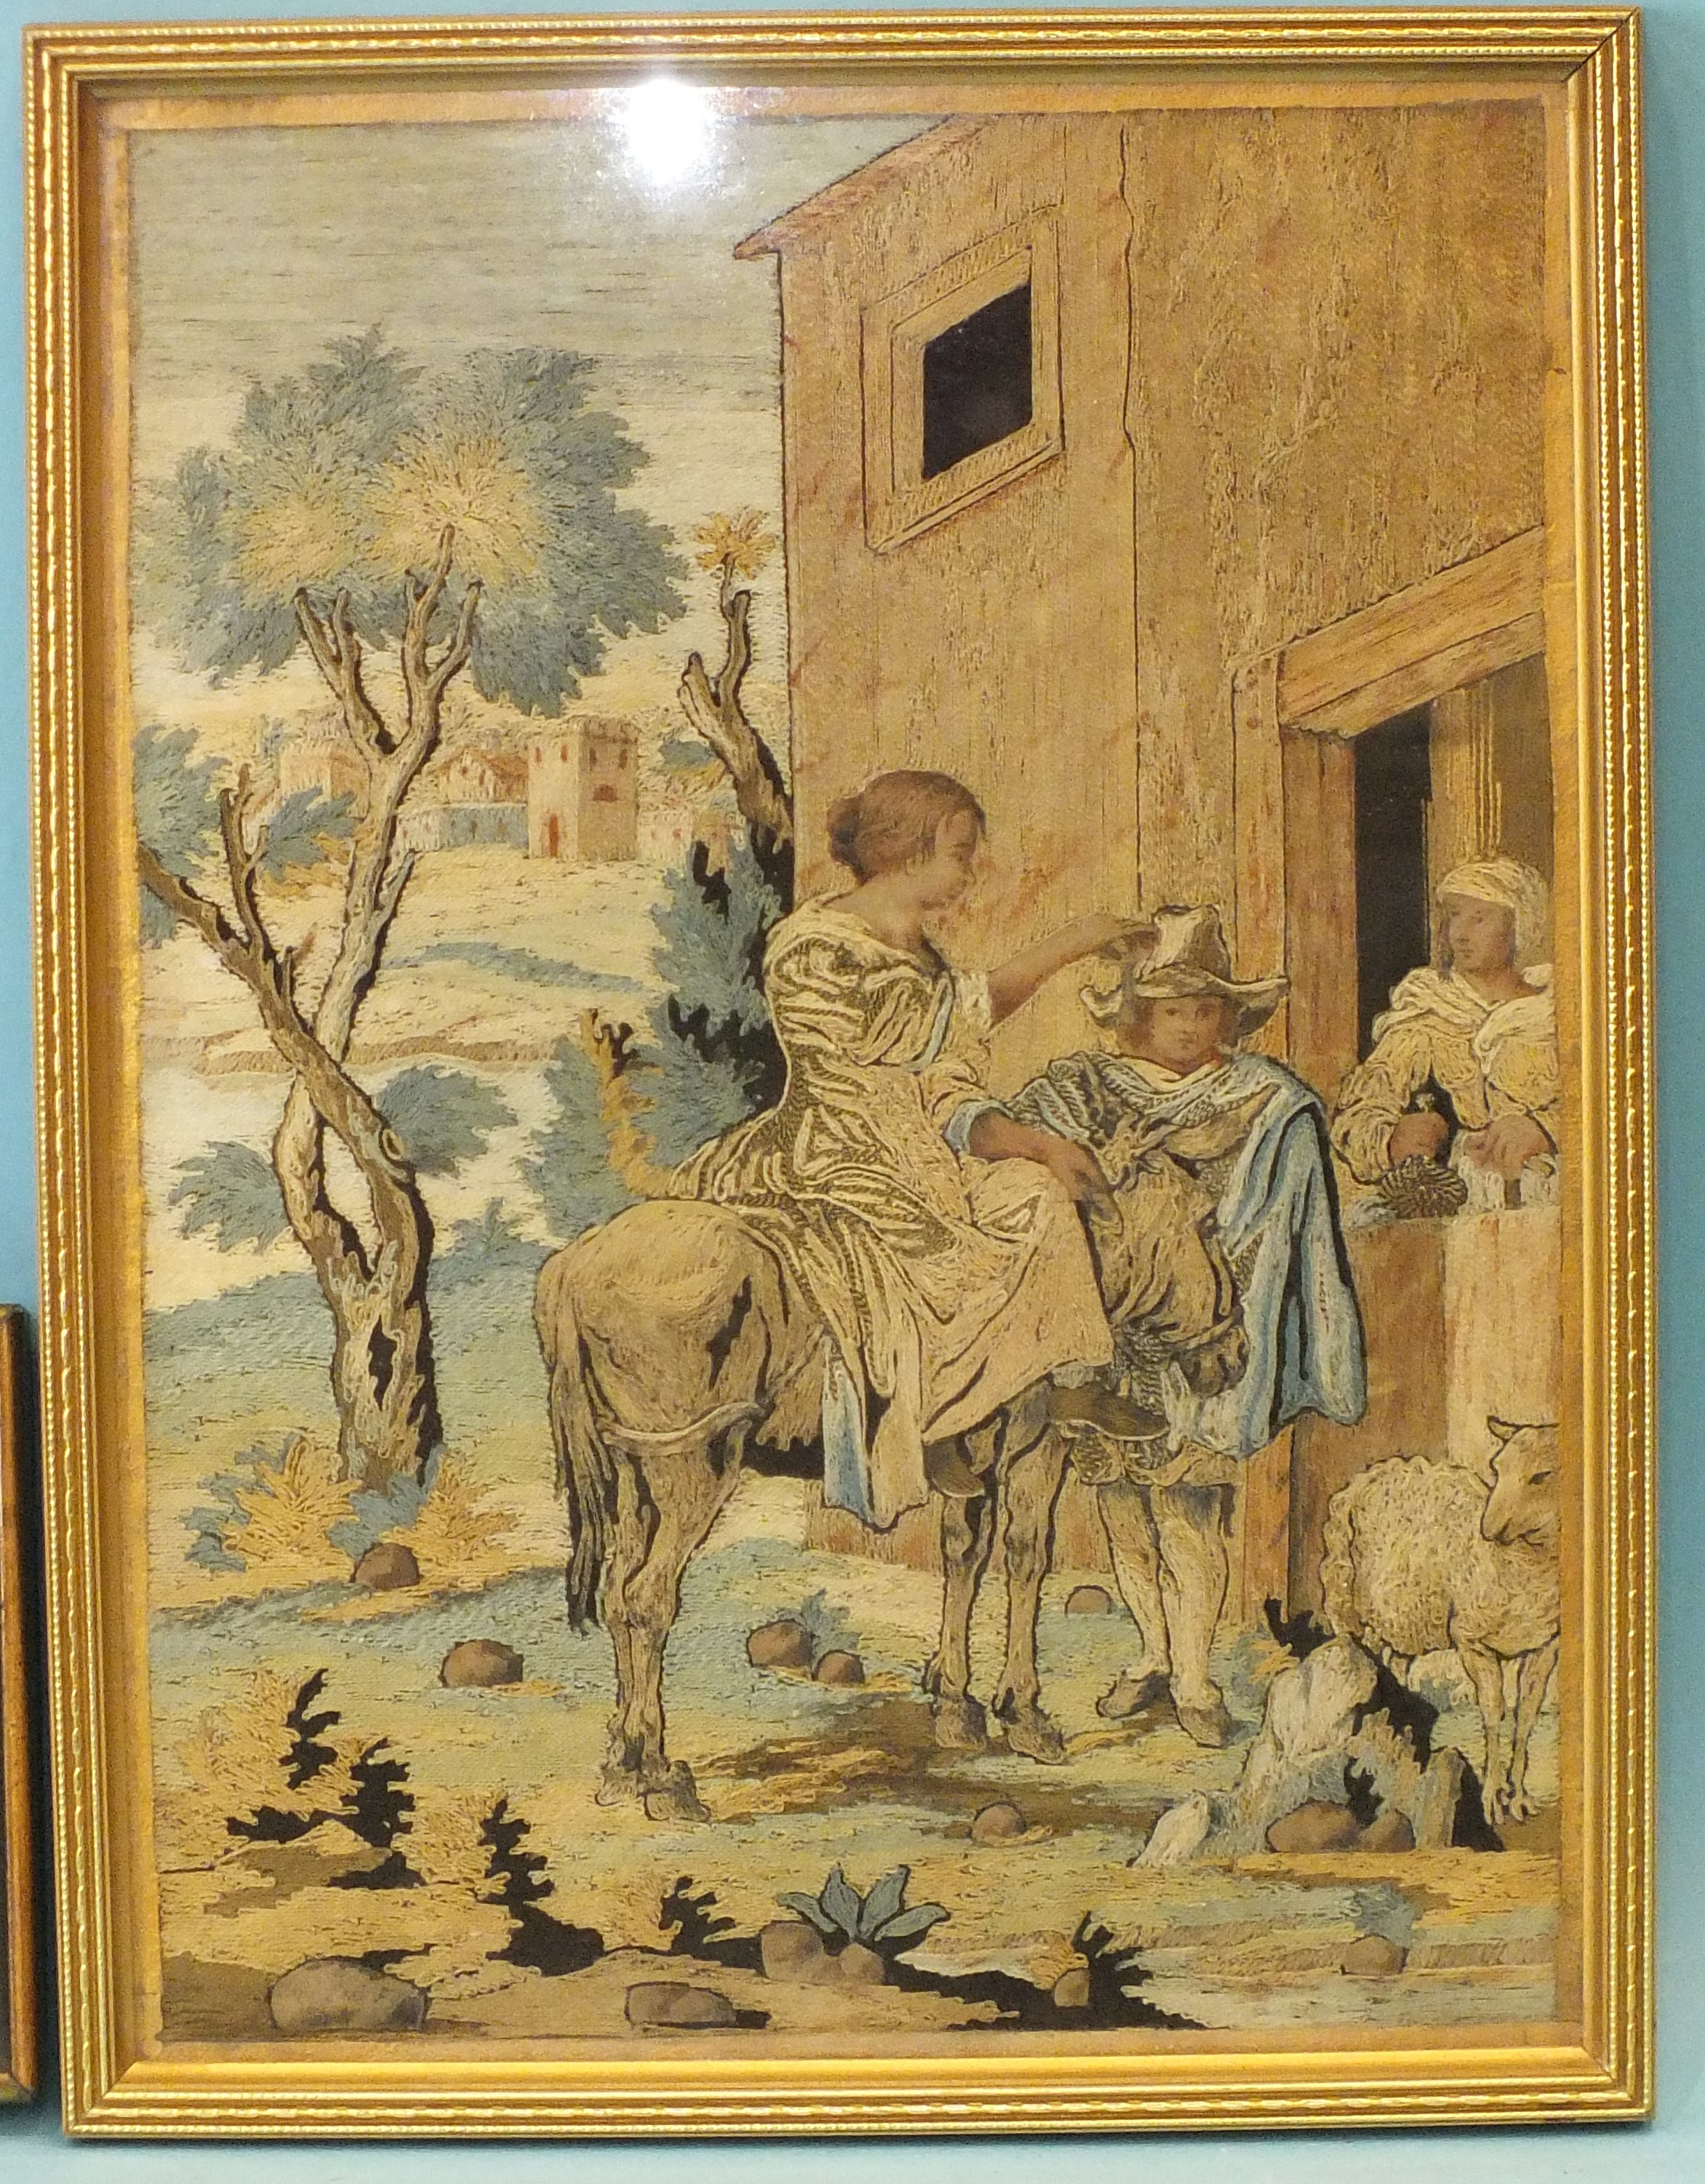 A 19th century needlework panel, with figures, a donkey, sheep and a village behind, 28 x 20cm and a - Image 2 of 3